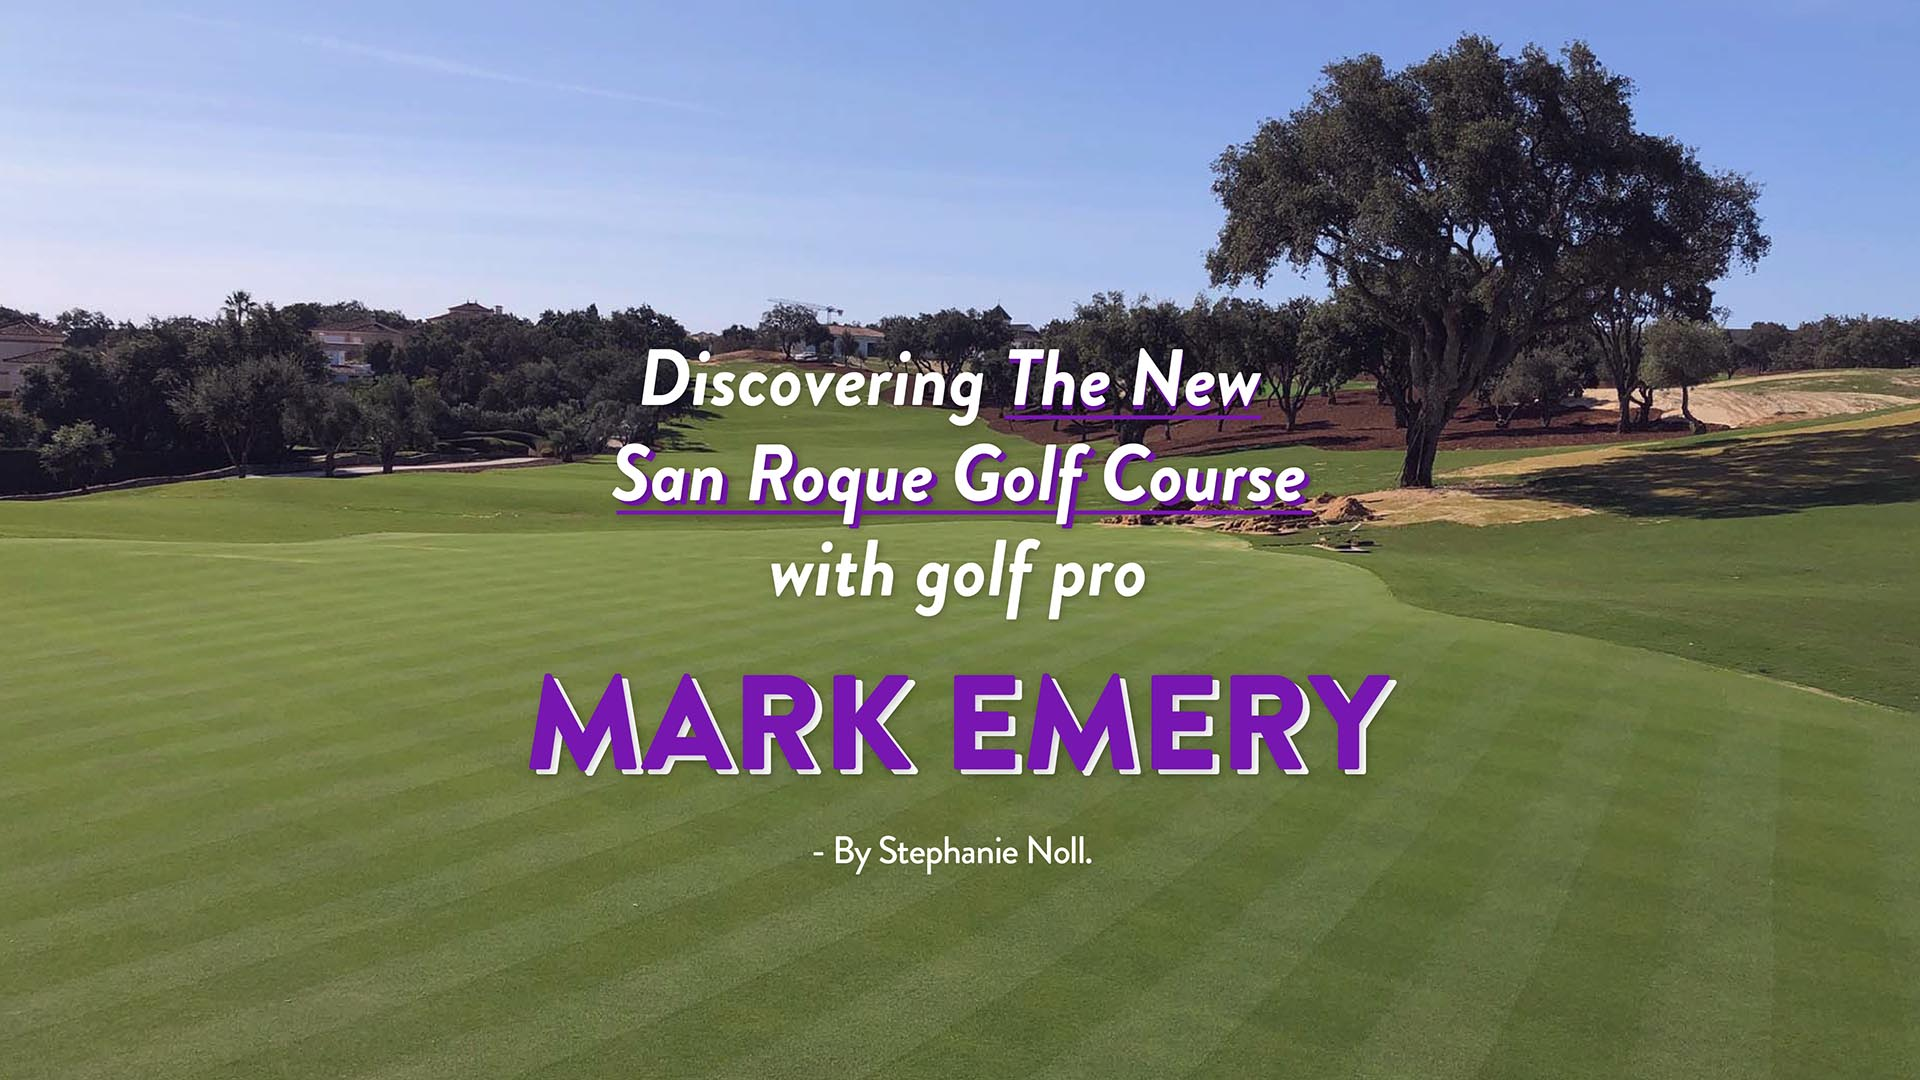 Discovering The New San Roque Golf Course with golf pro Mark Emery